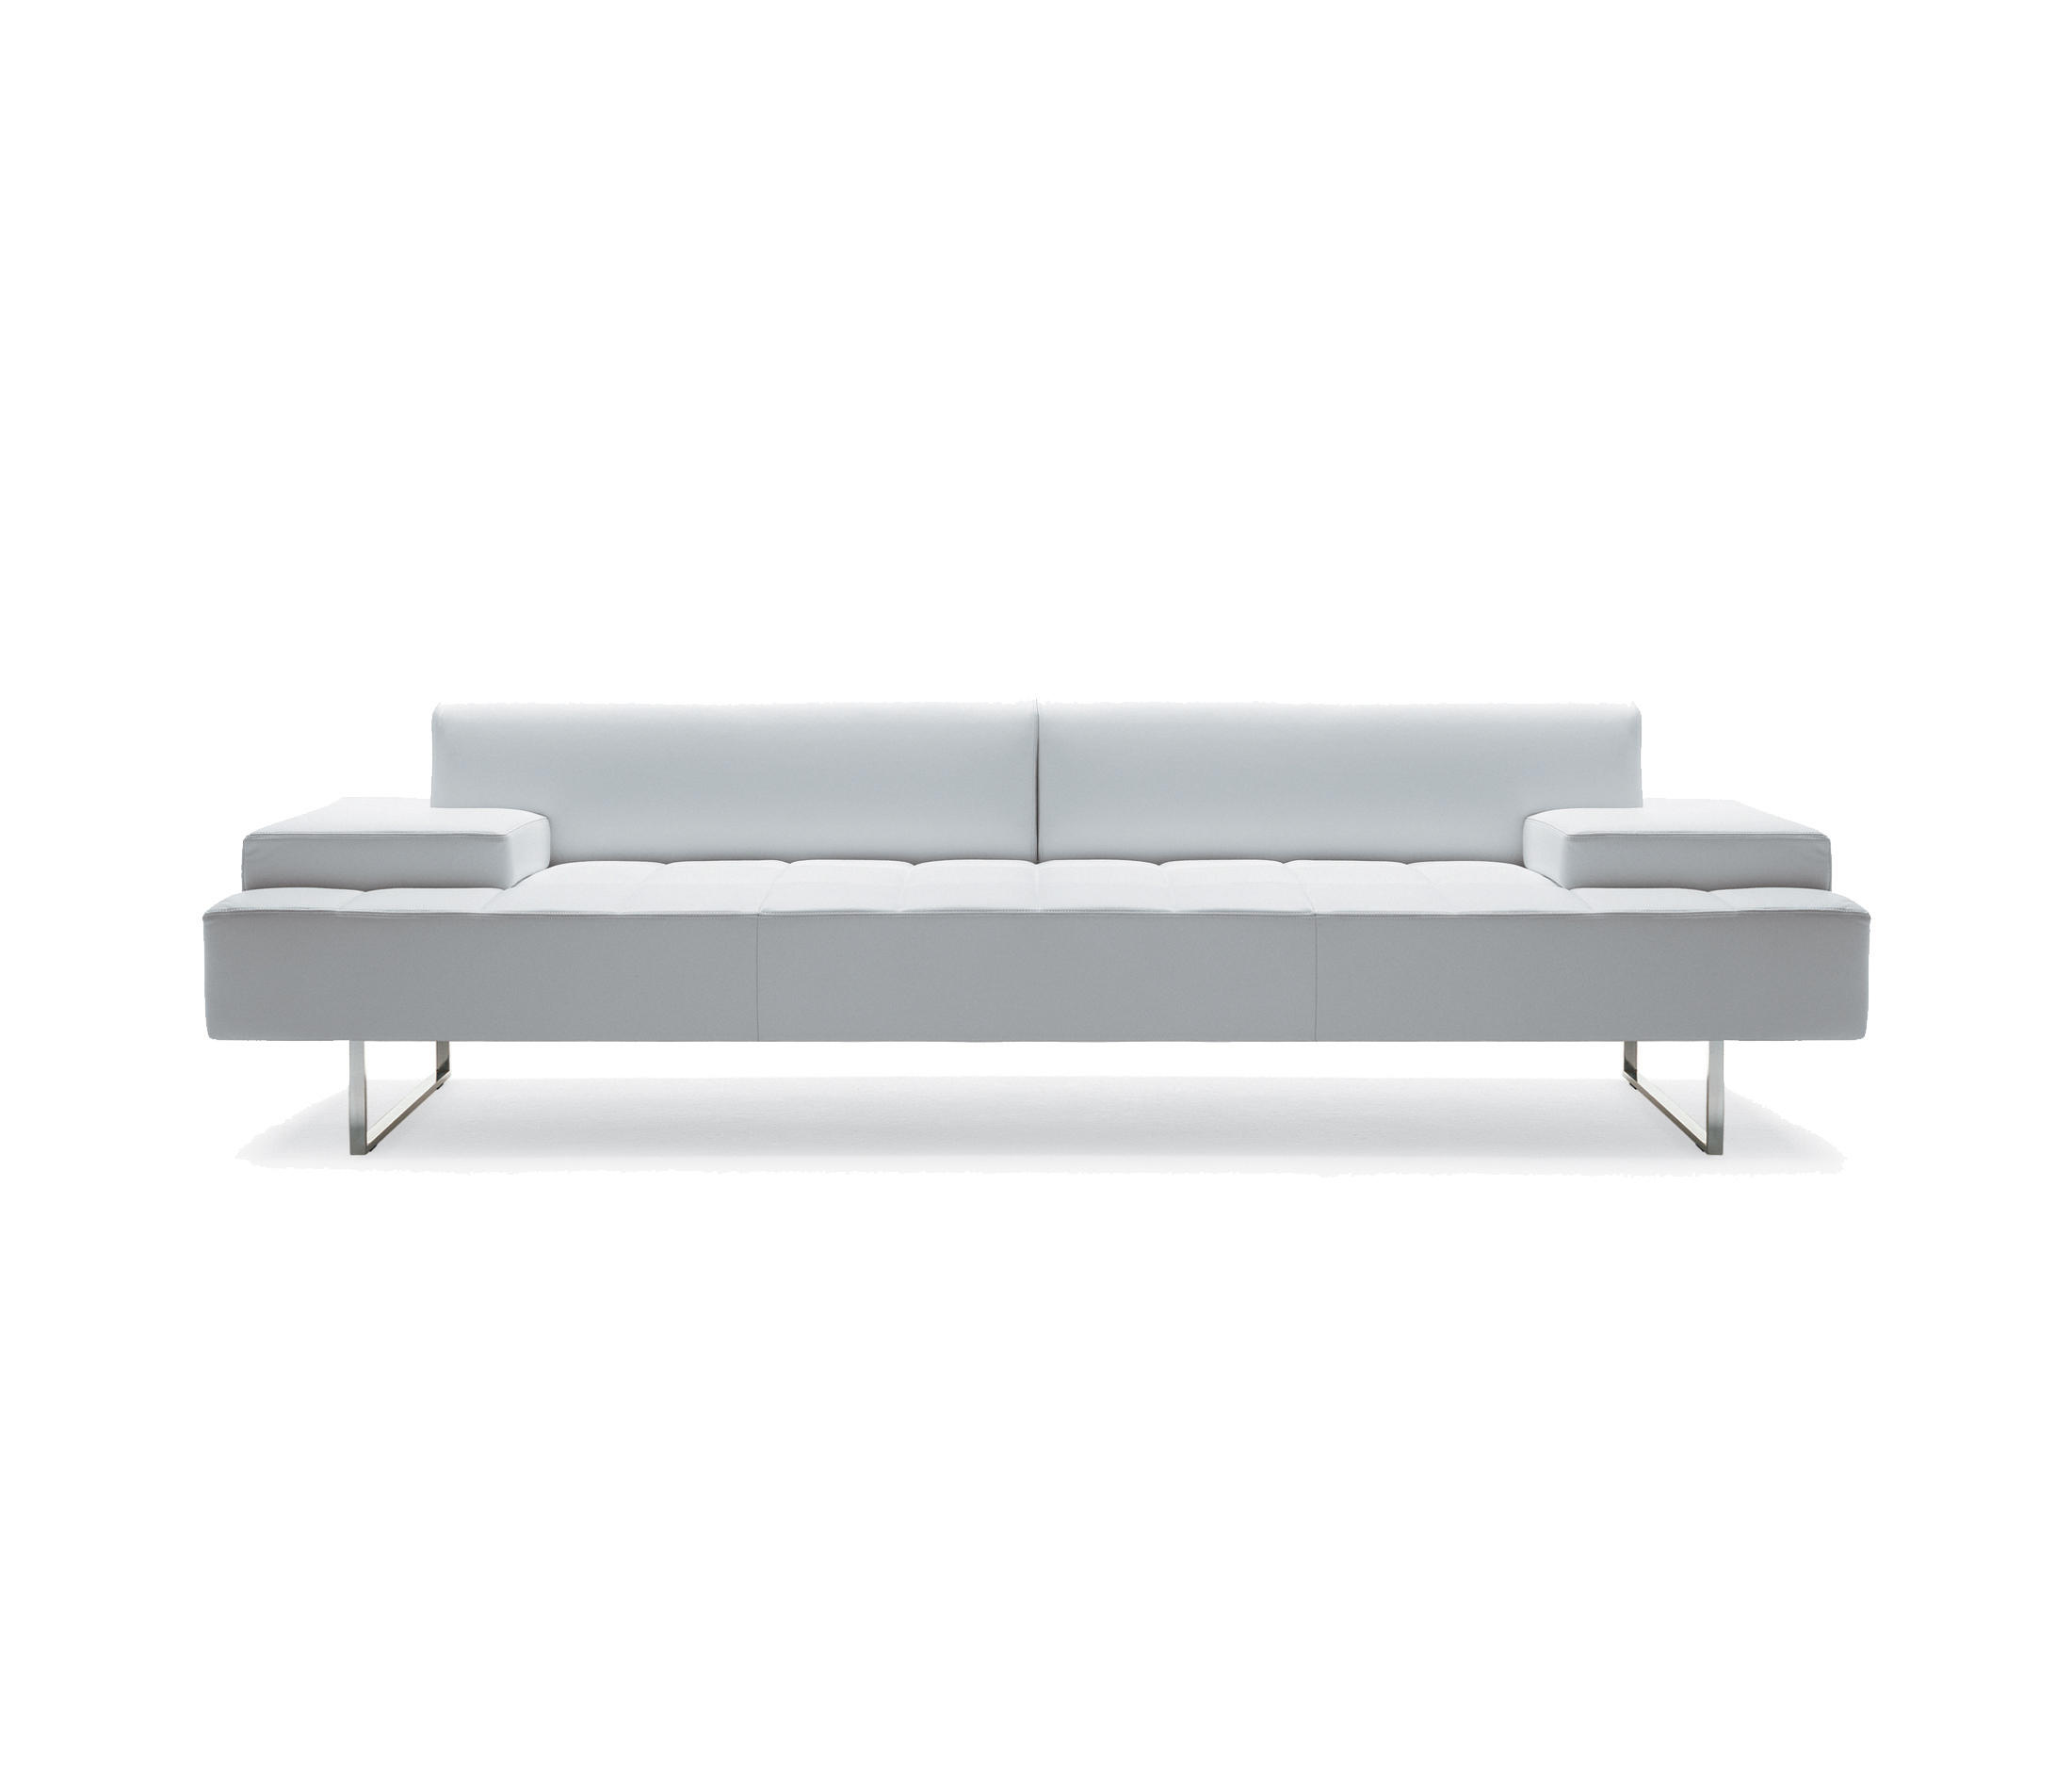 quadra sofas from poltrona frau architonic. Black Bedroom Furniture Sets. Home Design Ideas